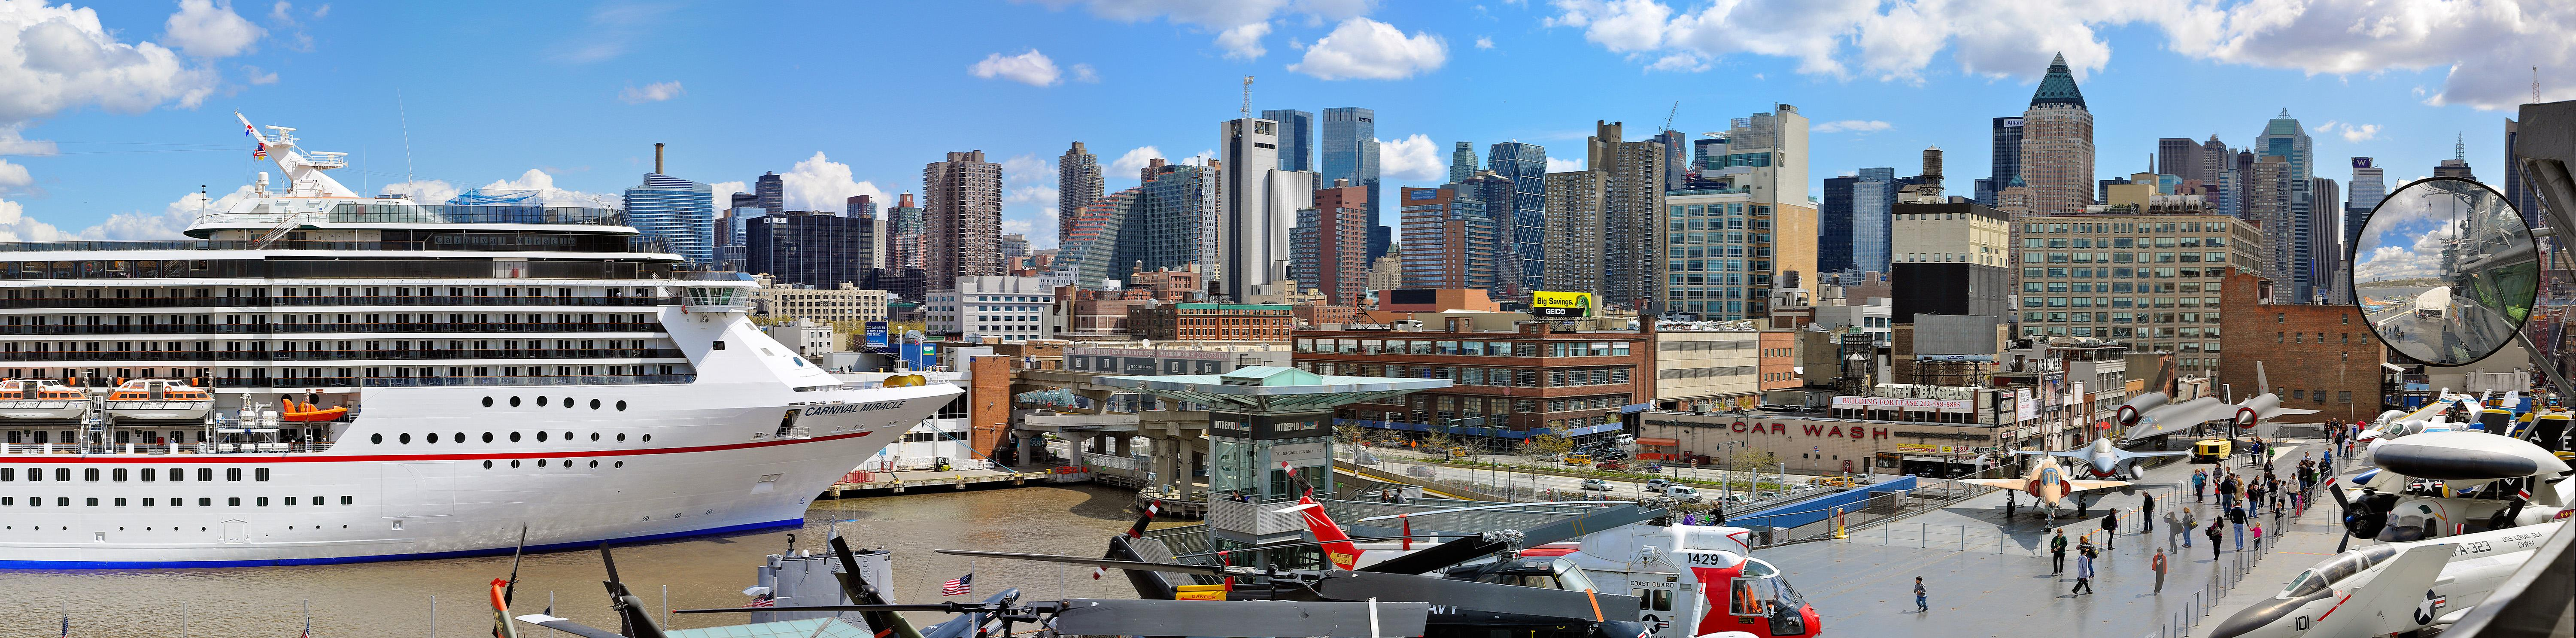 Skyline from the Intrepid museum, NYC - Contemporary Panoramic Color Photography